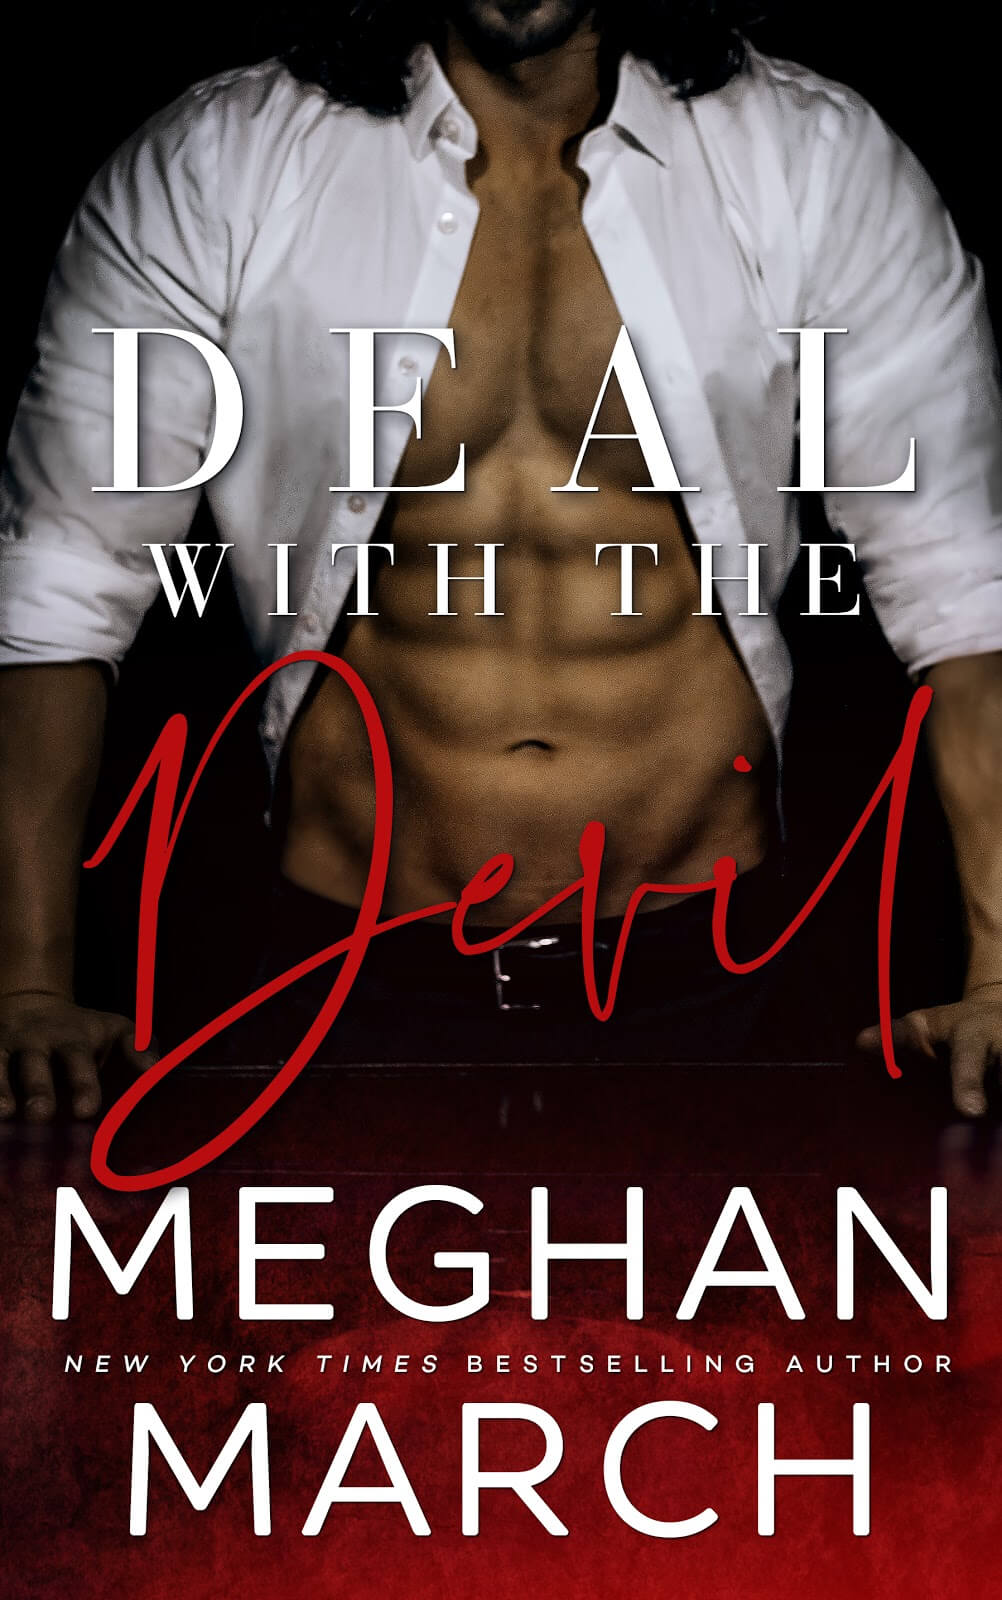 Release Blitz * Deal With The Devil (Forge trilogy book 1) by Meghan March * Blog Tour * Book Review * Giveaway